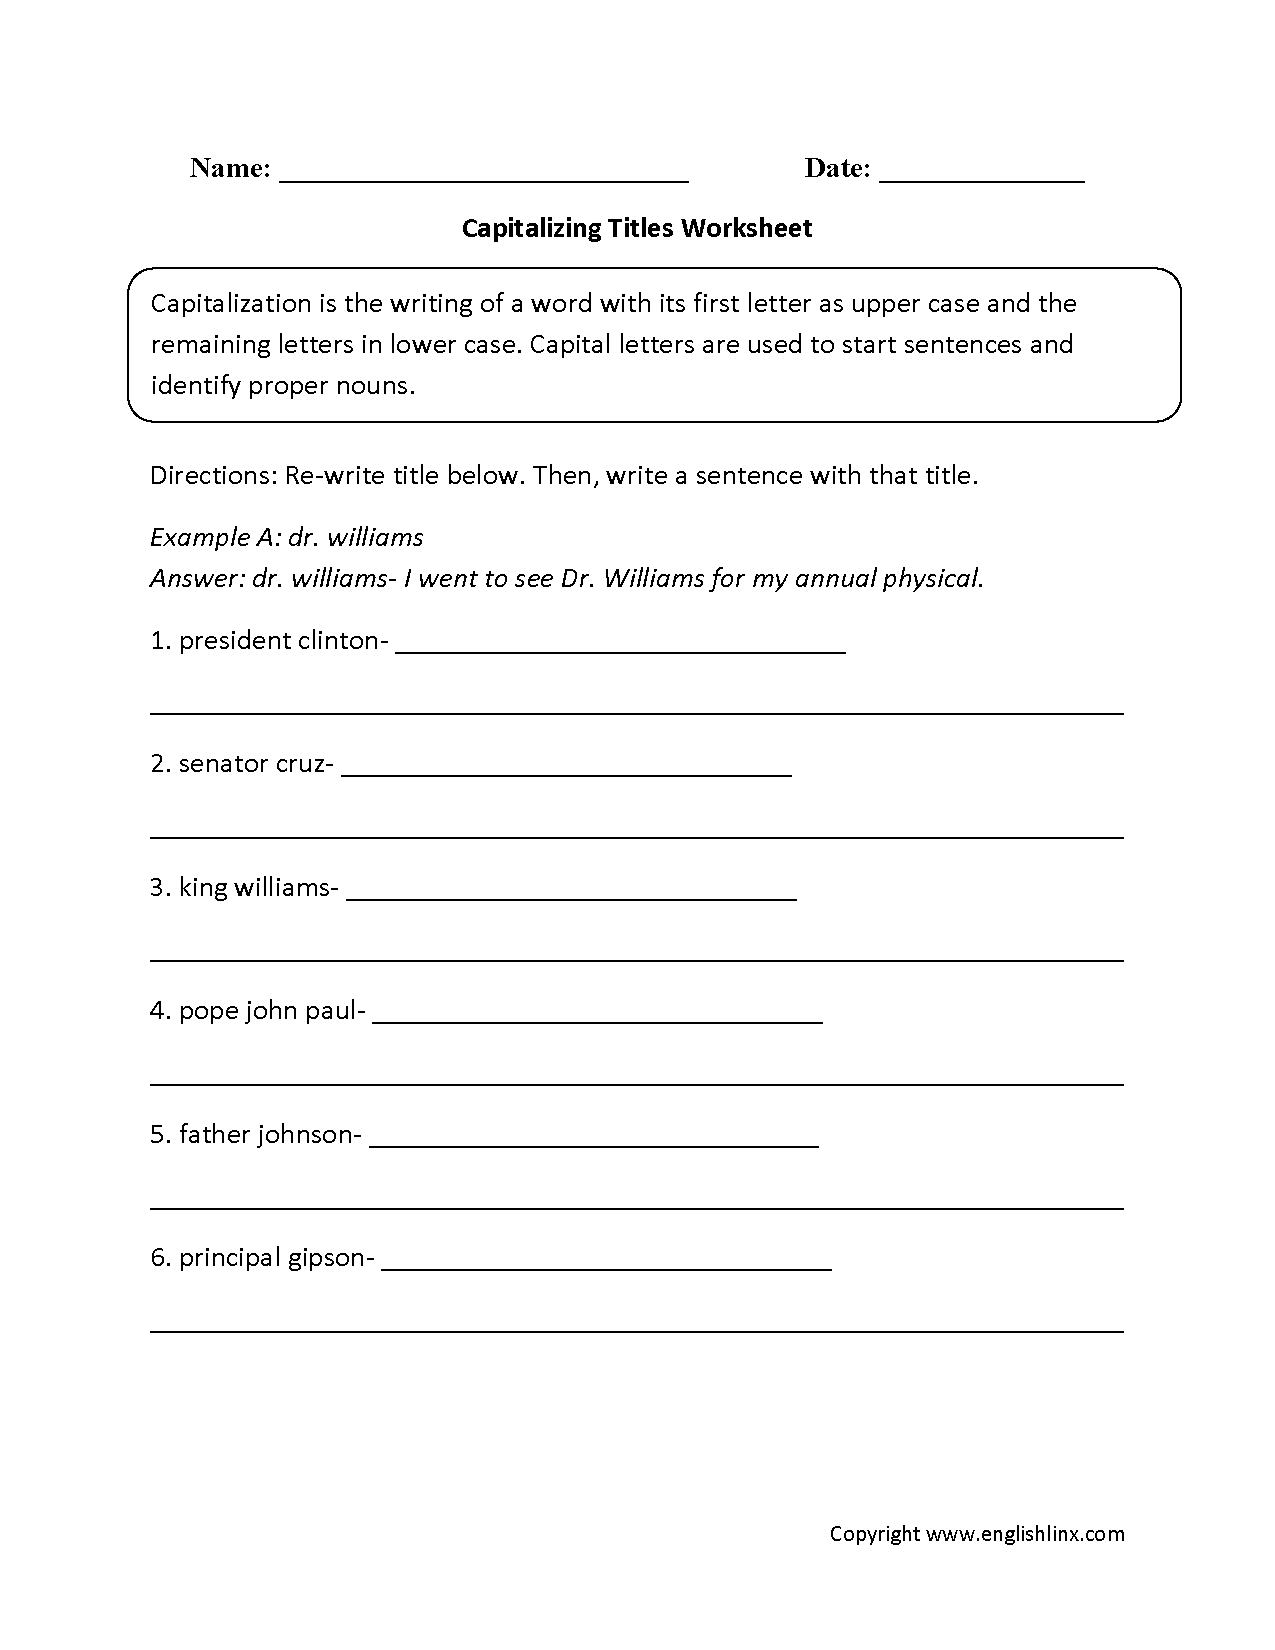 Englishlinx | Capitalization Worksheets - Free Printable Itbs Practice Worksheets